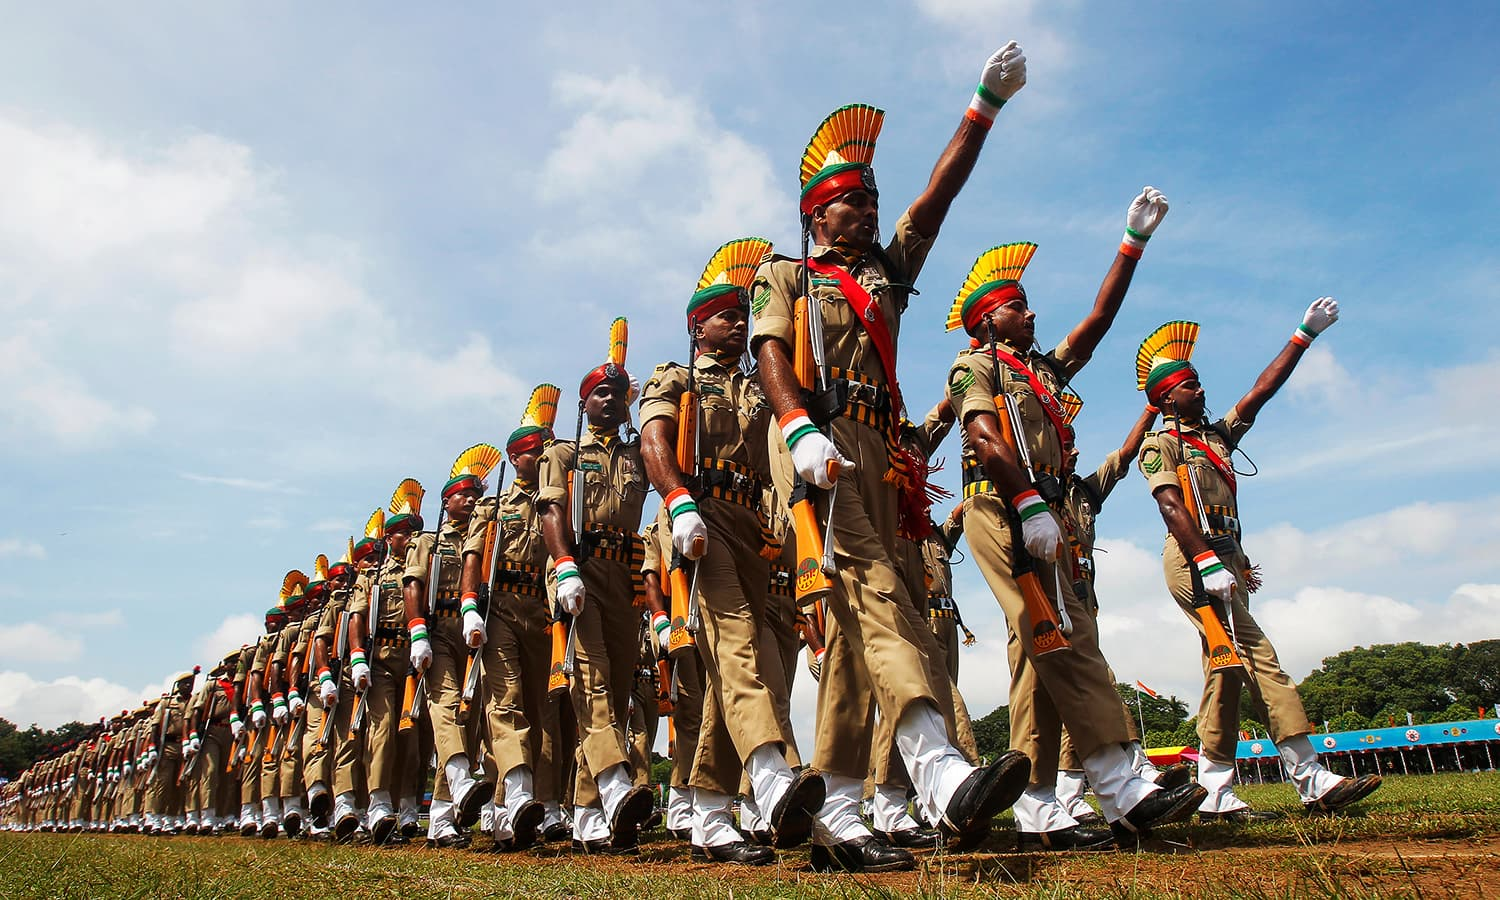 Indian paramilitary soldiers march at a parade during country's Independence Day celebrations in Agartala, India, August 15, 2016. ─ Reuters